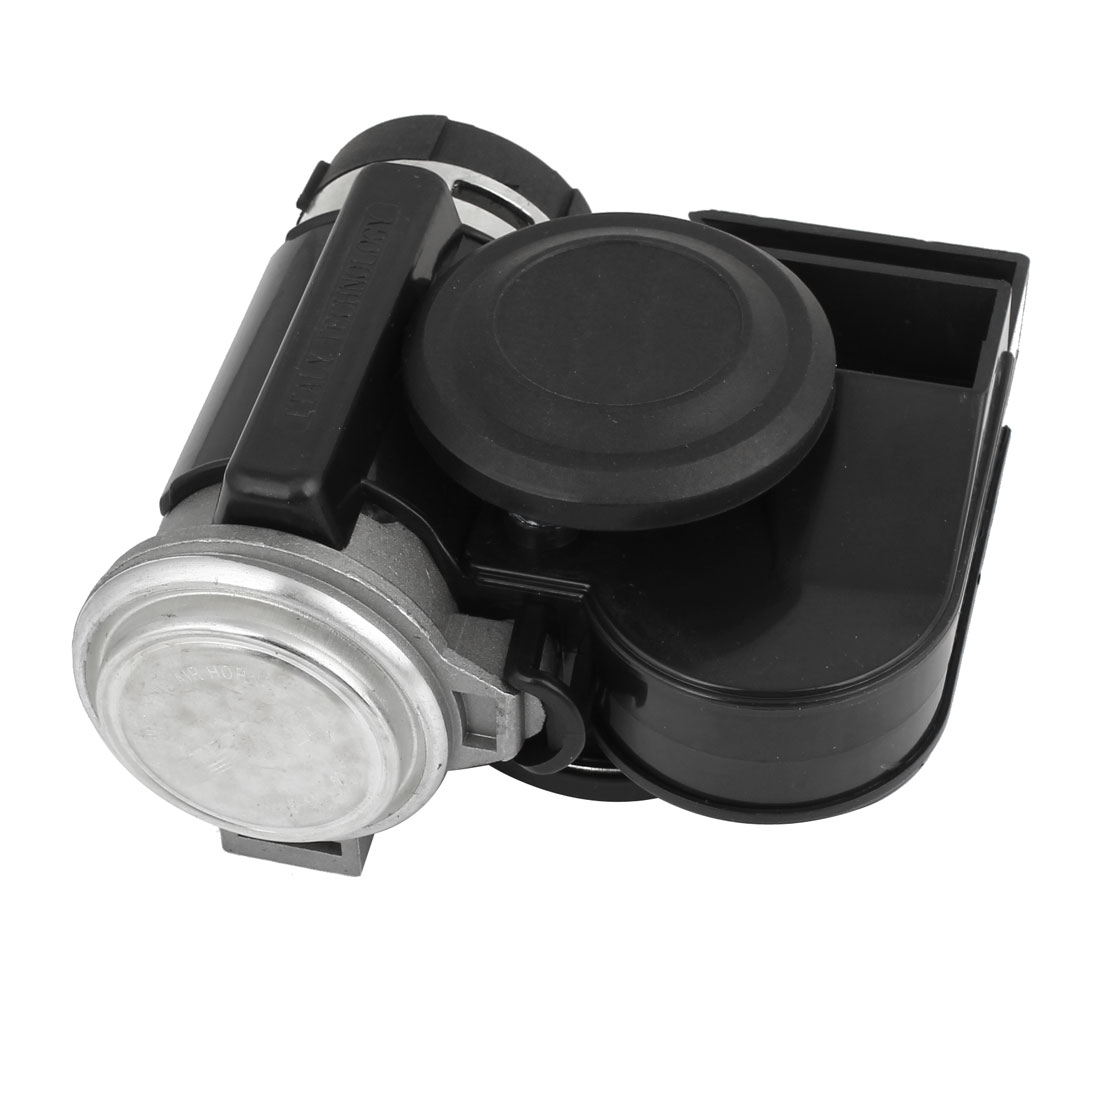 Black Metal Shell Compact Air Horn Loud 12V for Car Truck